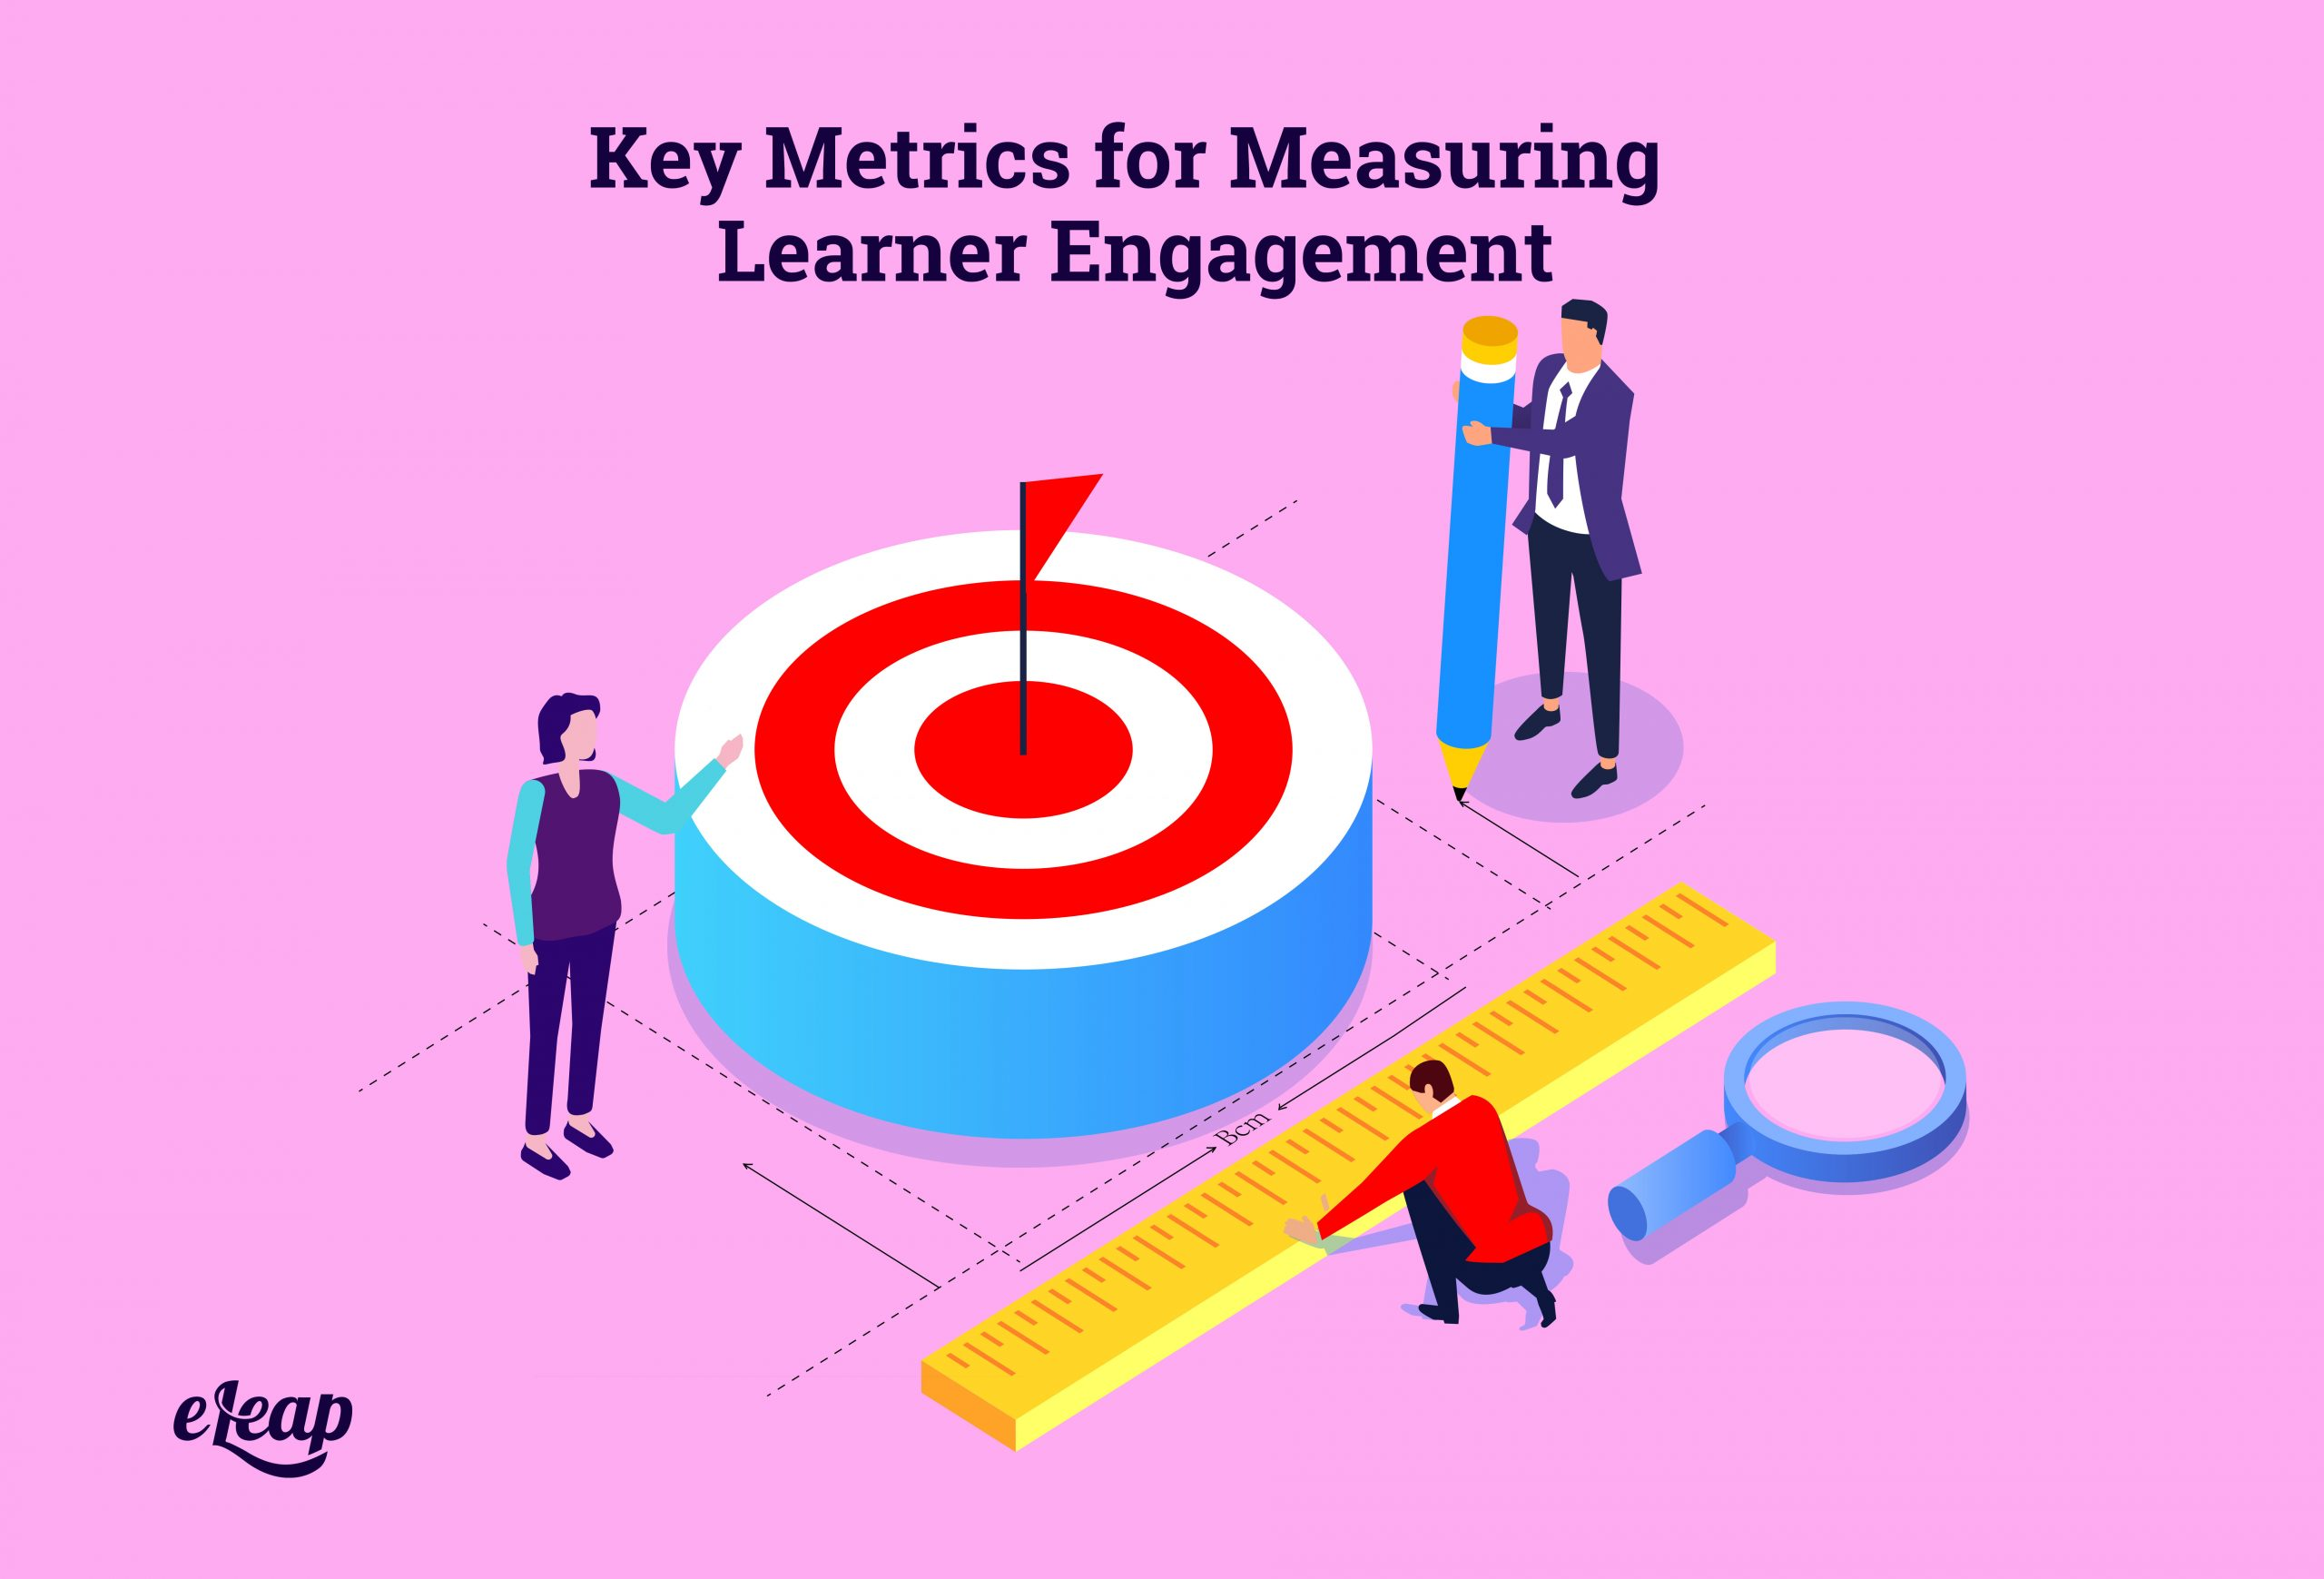 Key Metrics for Measuring Learner Engagement